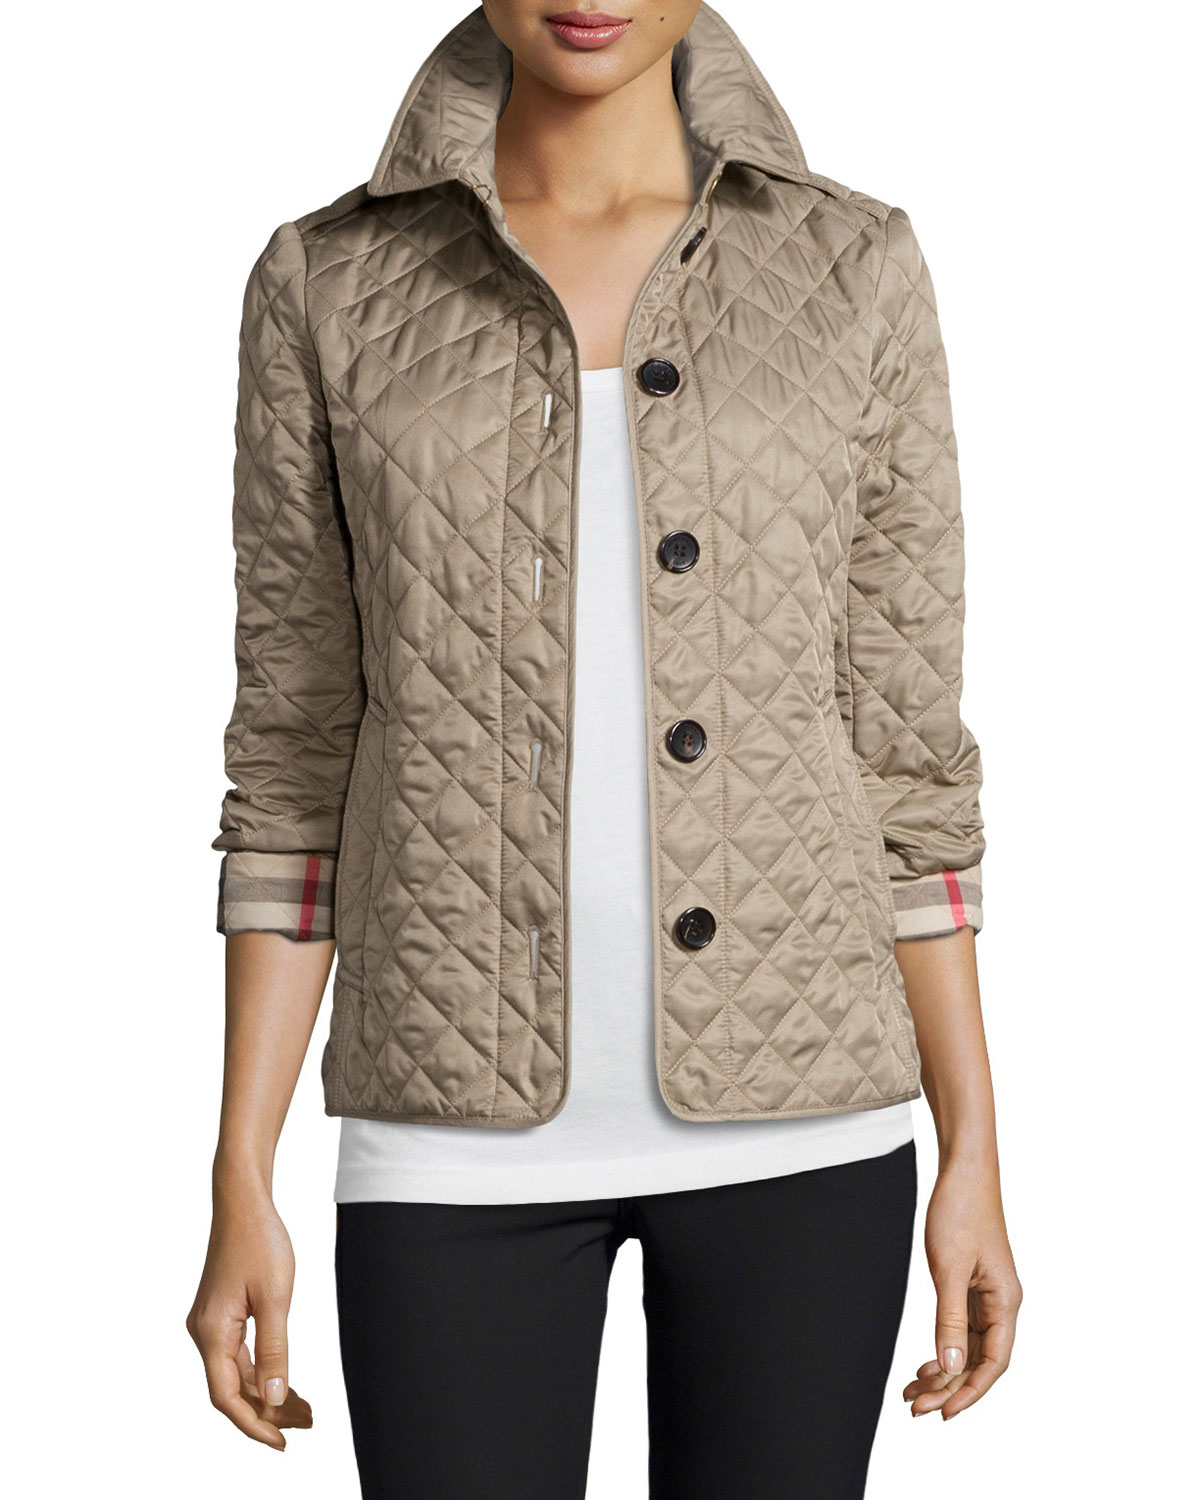 Burberry Ashurst Classic Modern Quilted Jacket Neiman Marcus